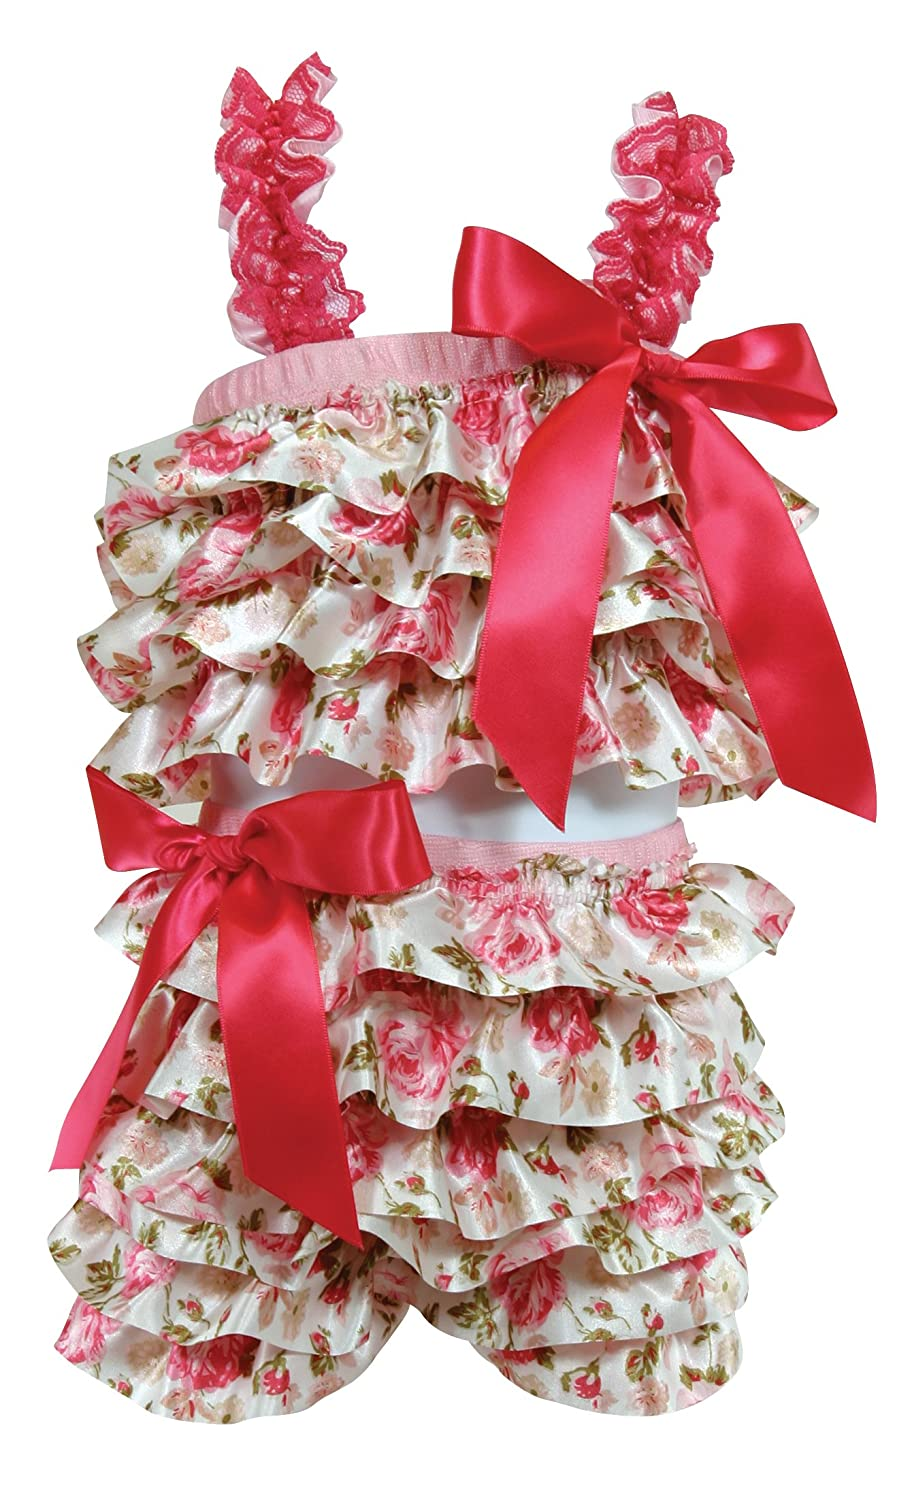 Stephan Baby Ruffled Flapper Top and Diaper Cover, Pink Roses, 6-12 Months by Stephan Baby   B00INYIYRG